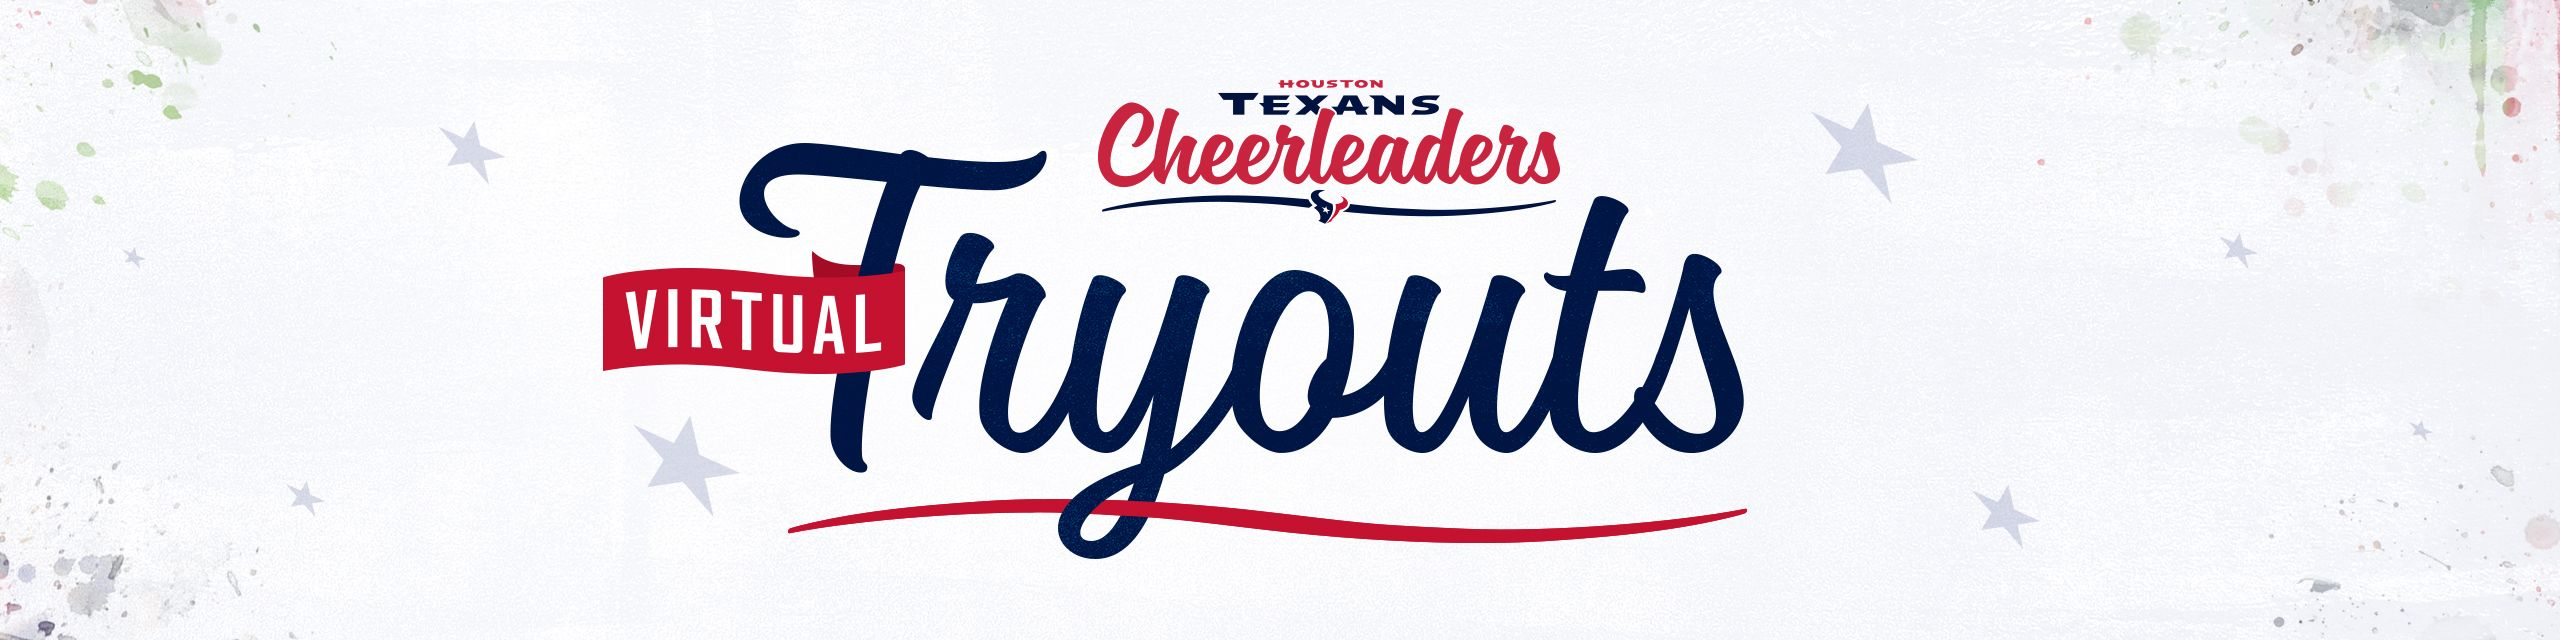 Virtual Houston Texans Cheerleaders Tryouts